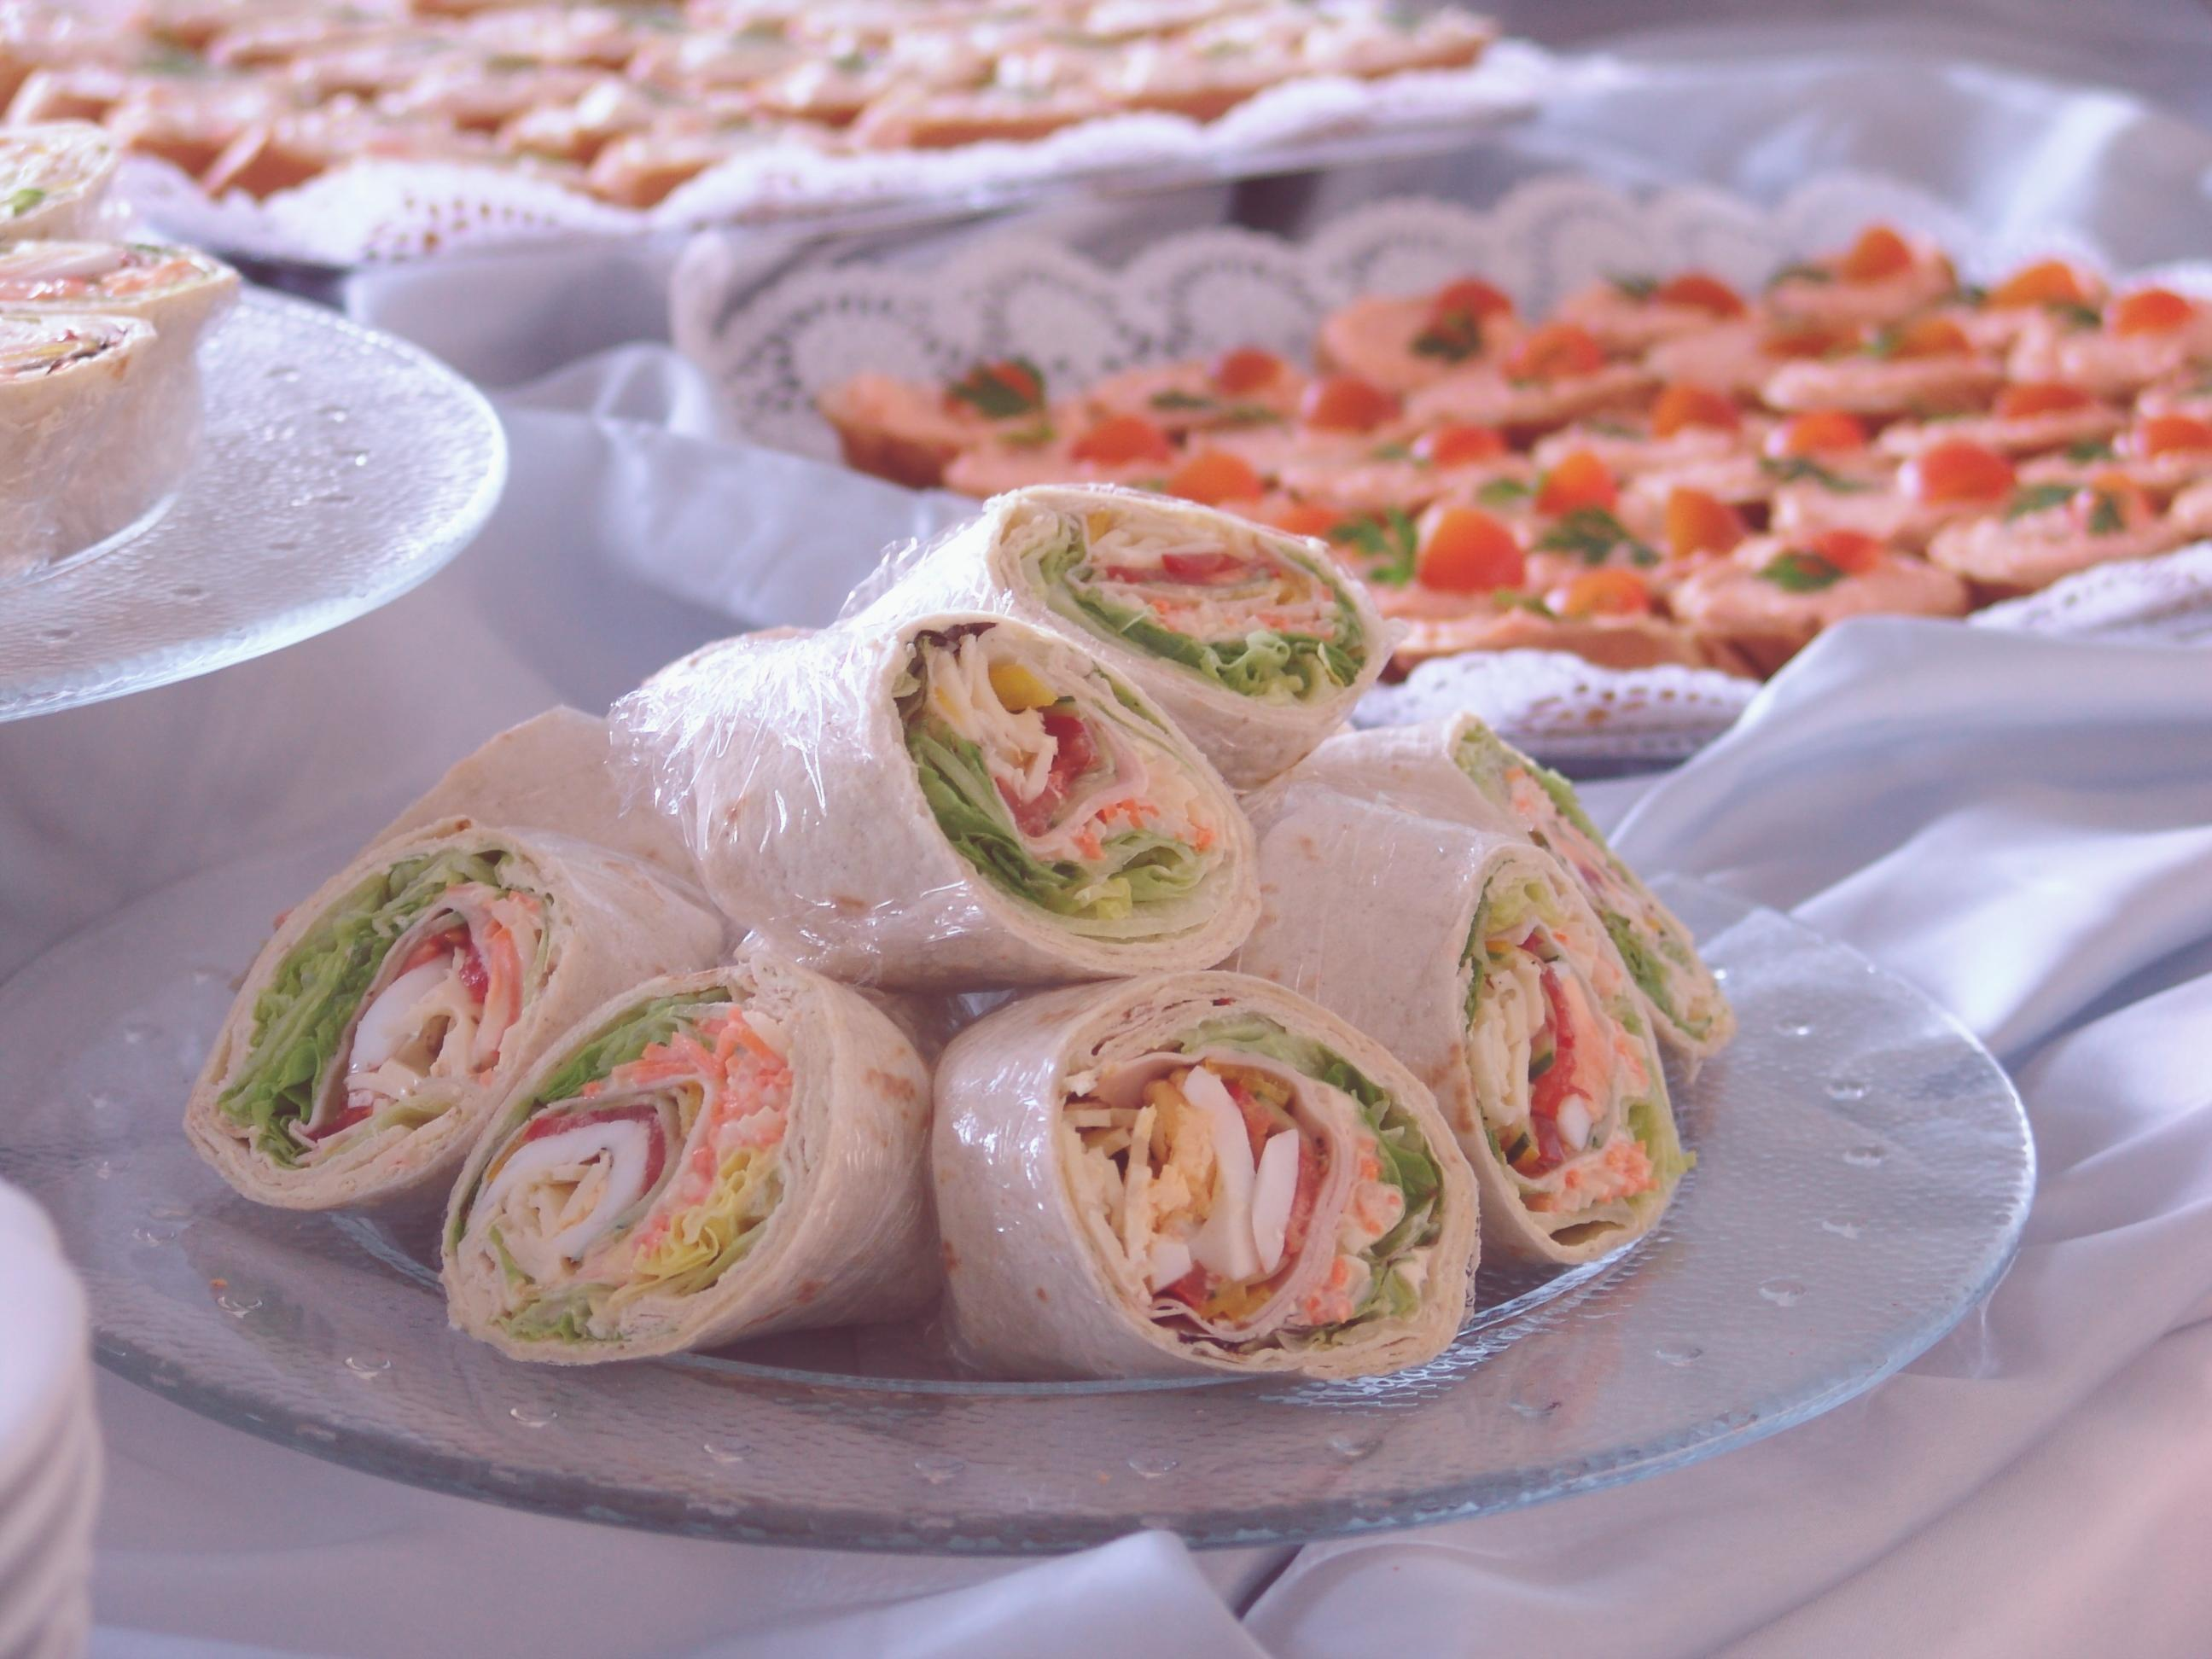 Party Catering Services North East